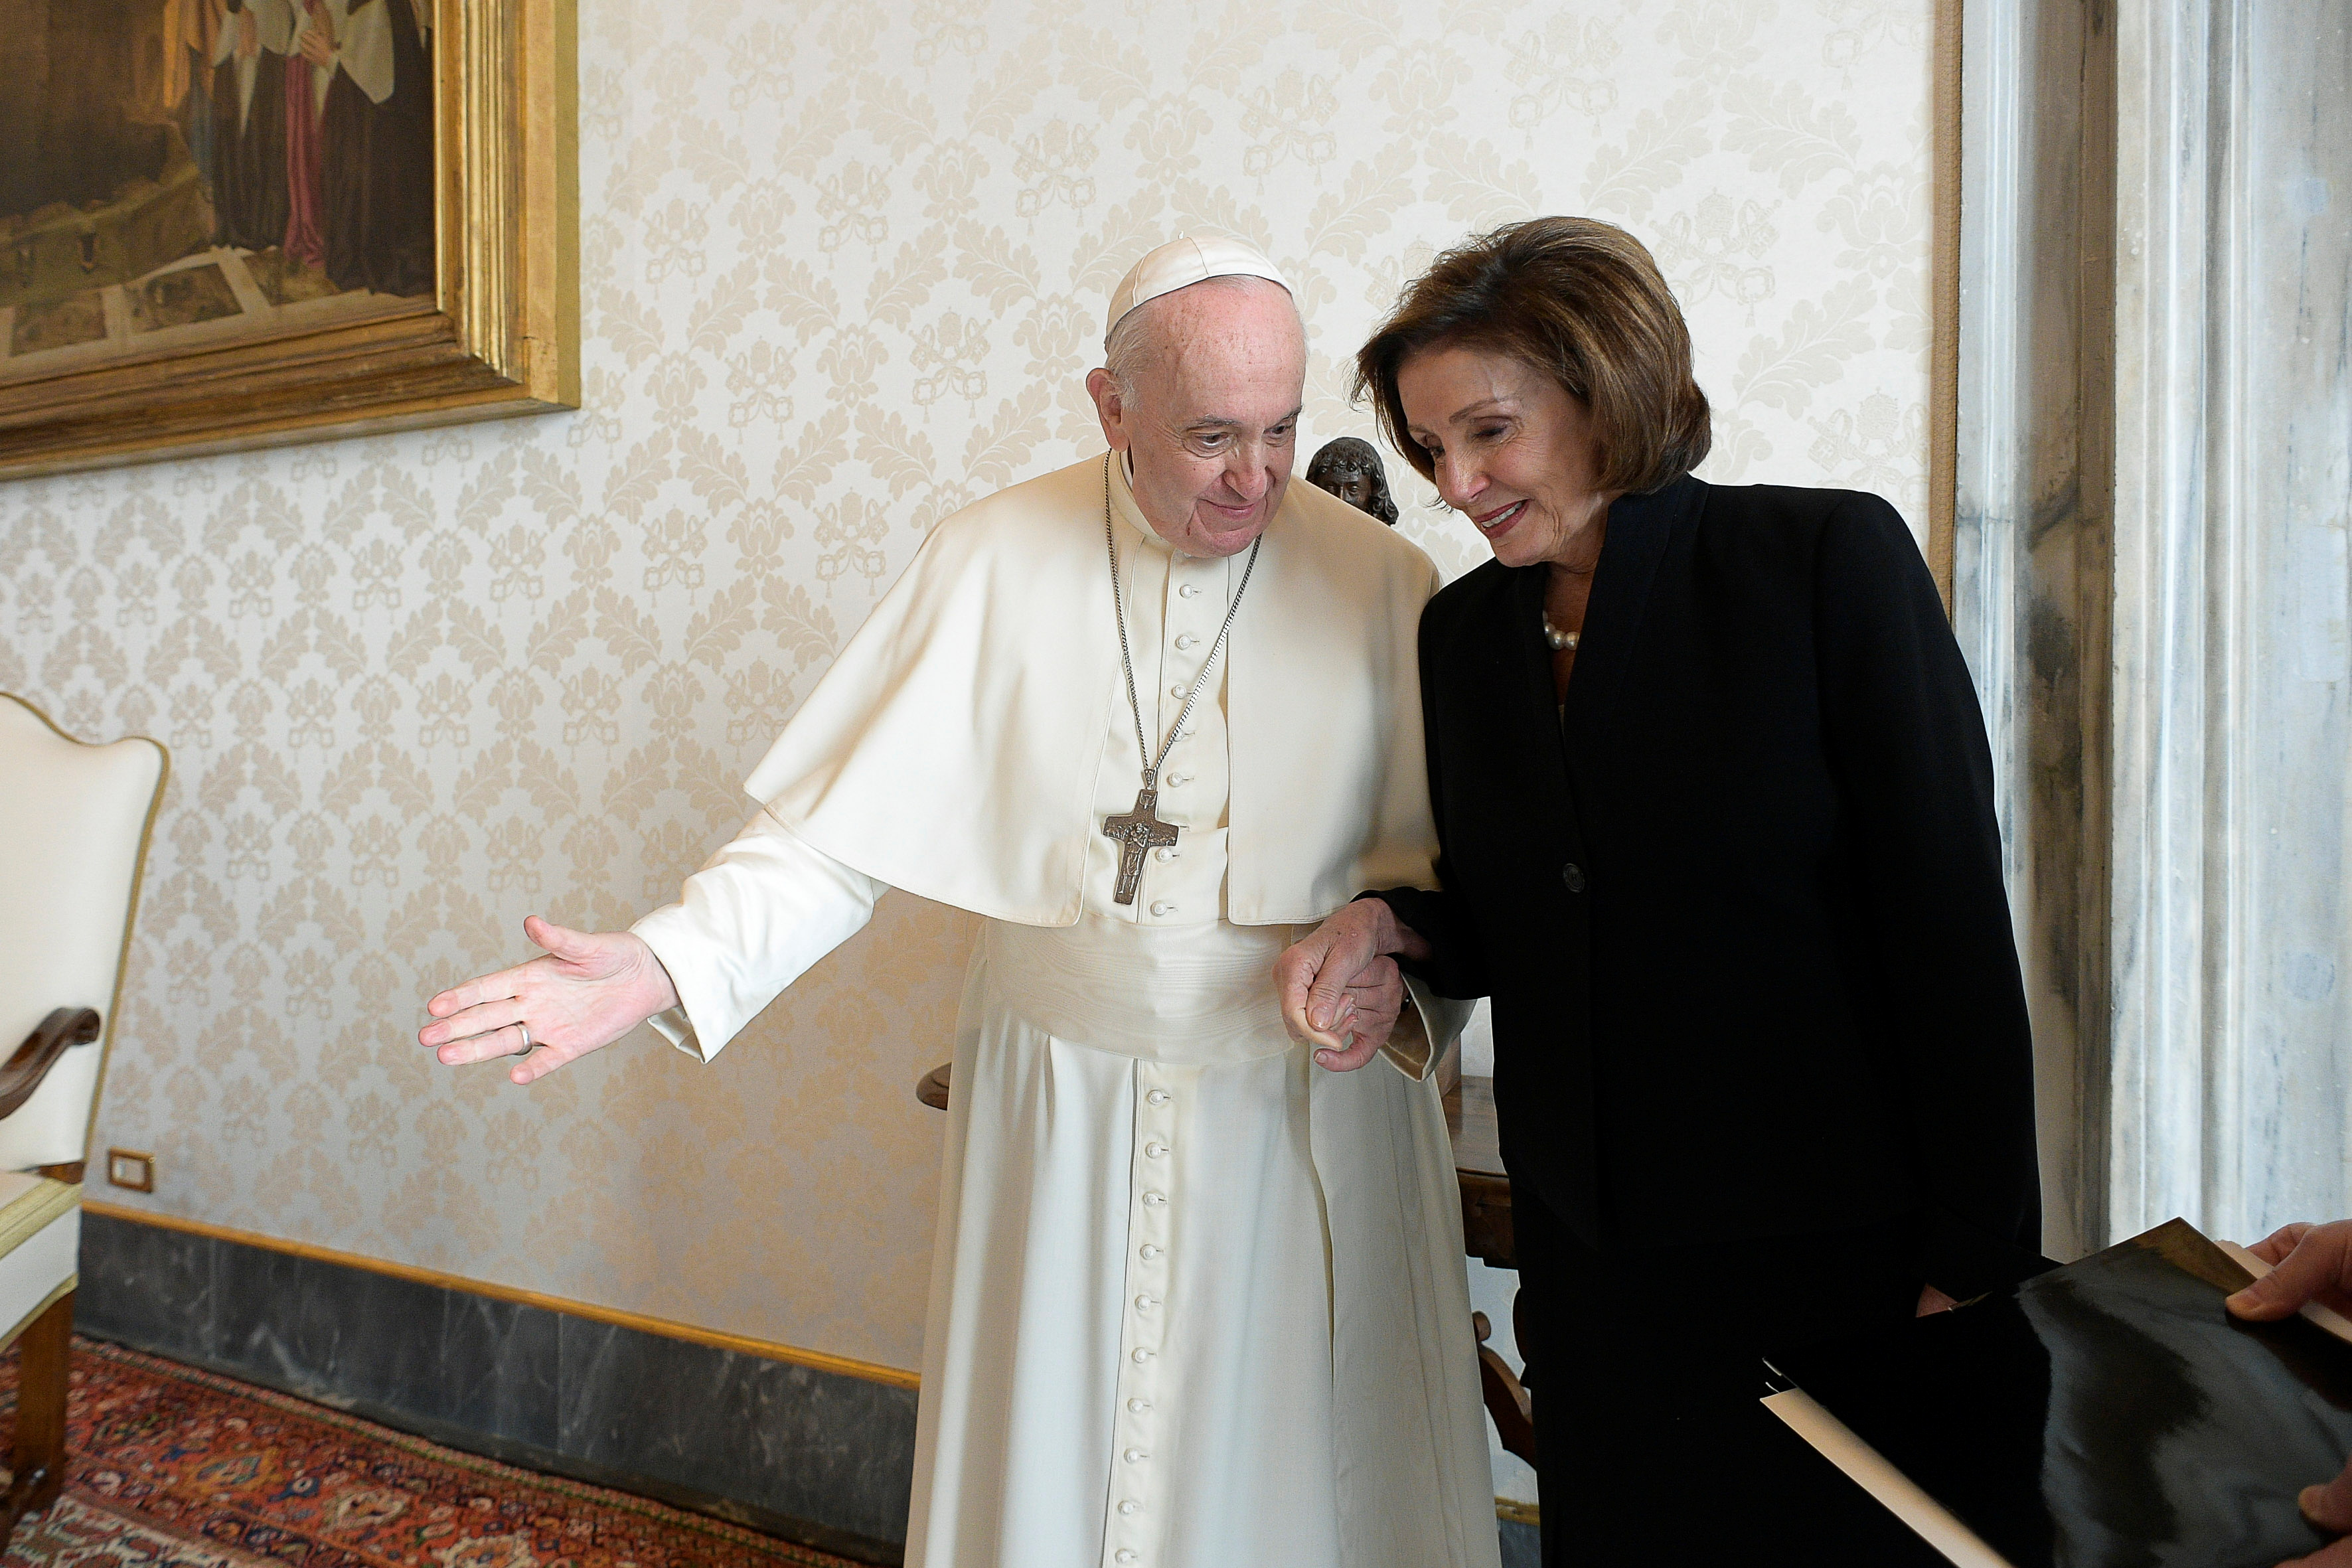 Pope Francis welcomes U.S. Speaker of the House Nancy Pelosi as they meet at the Vatican, October 9, 2021.  Vatican Media/Handout via REUTERS